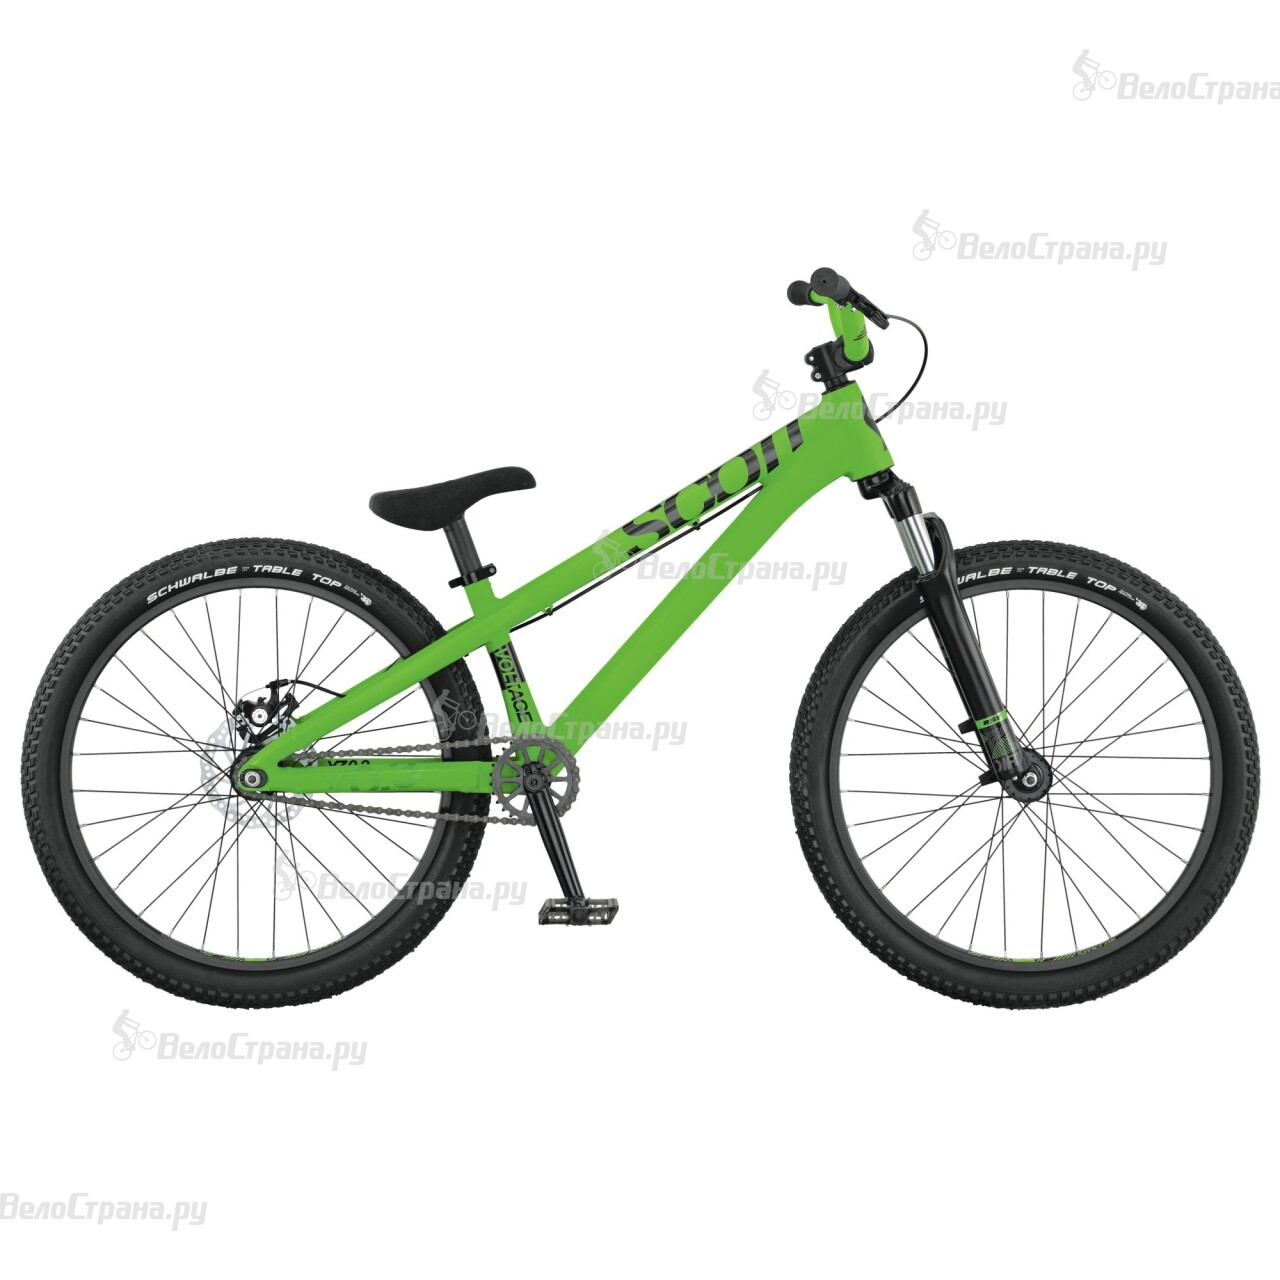 Велосипед Scott Voltage YZ 0.3 24 (2015) велосипед scott voltage yz 20 2014